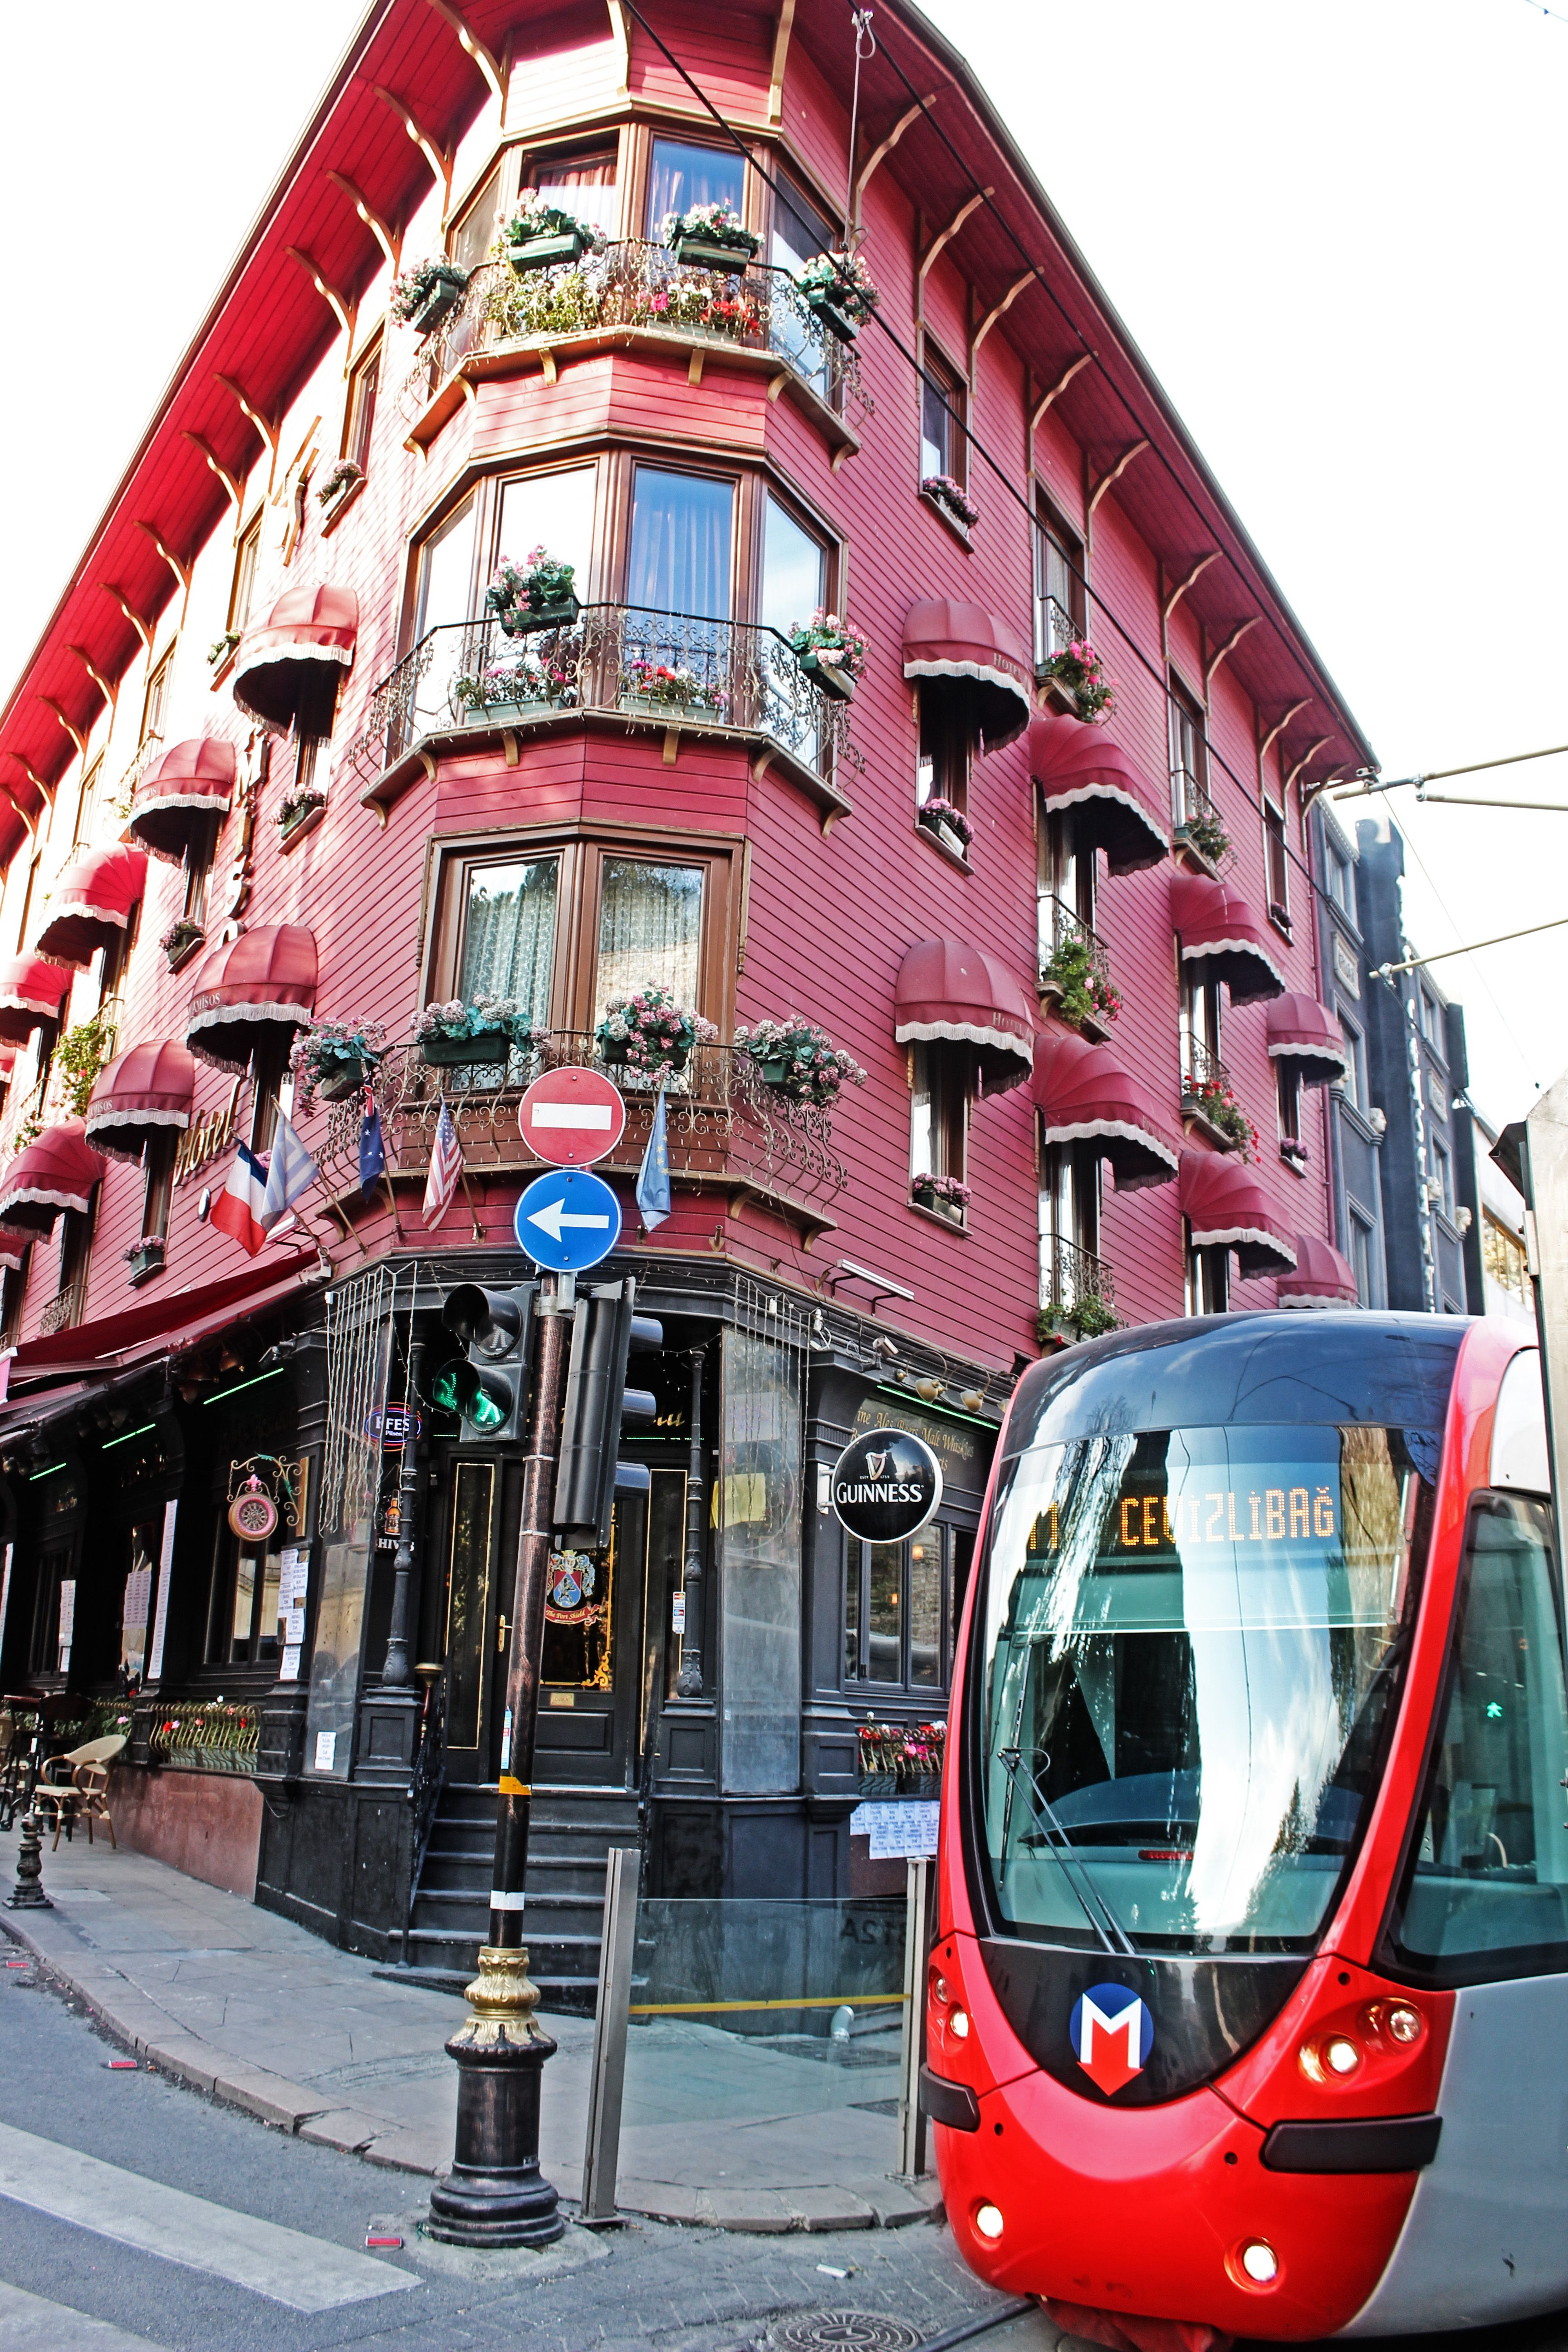 """Cafe - İstanbul - Gülhane. Include #Istanbul in your #travel #bucketlist #bucket #list. Checkout """"City is Yours"""" http://www.cityisyours.com/explore to discover amazing bucket lists created by local experts. #local #restaurant #bar #hotel."""